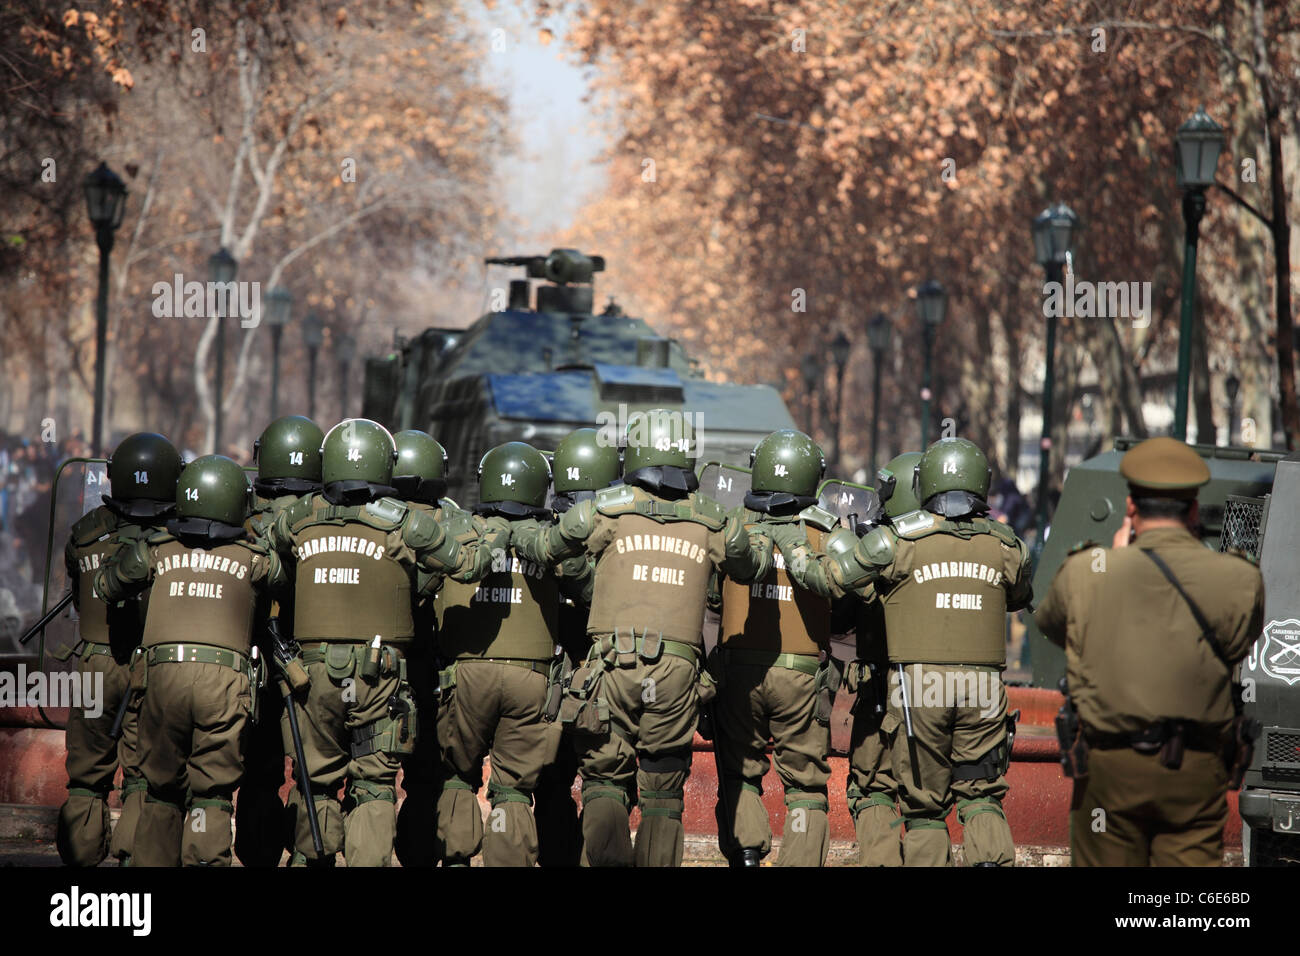 Chilean riot police watching demonstrators during a student strike in Santiago's Downtown, Chile. - Stock Image